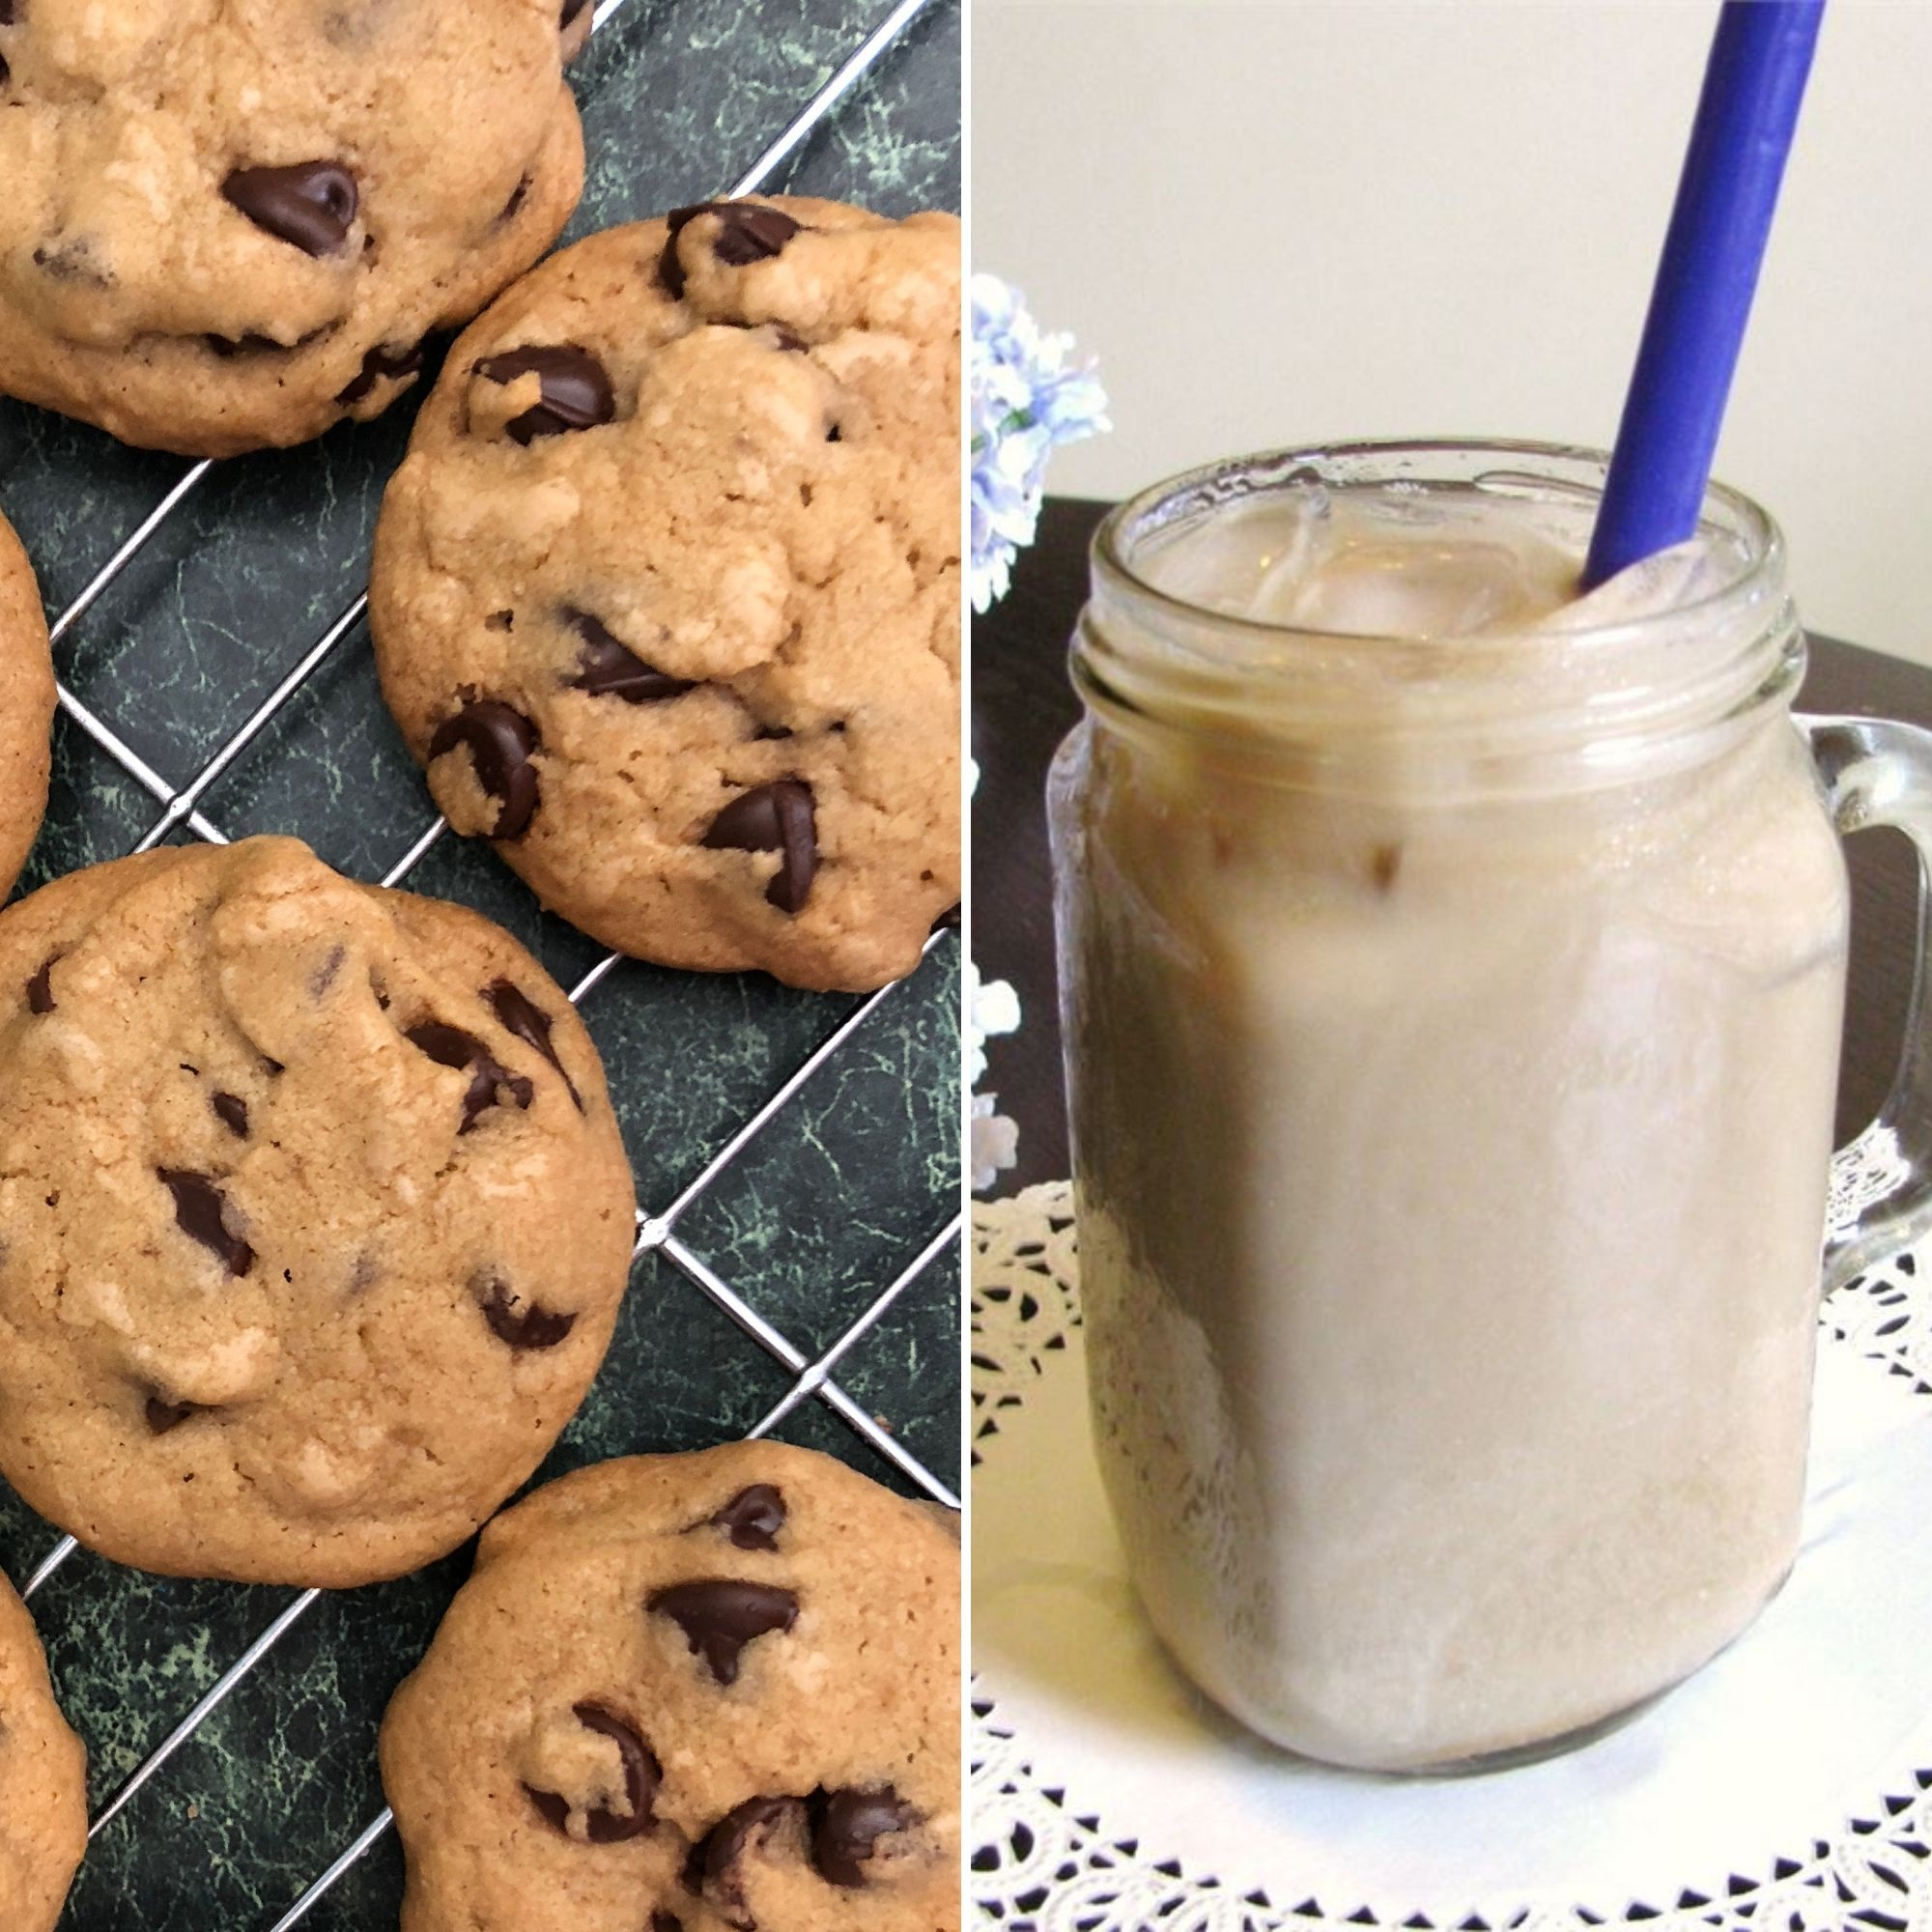 Chocolate chip cookies and a glass of white Russian